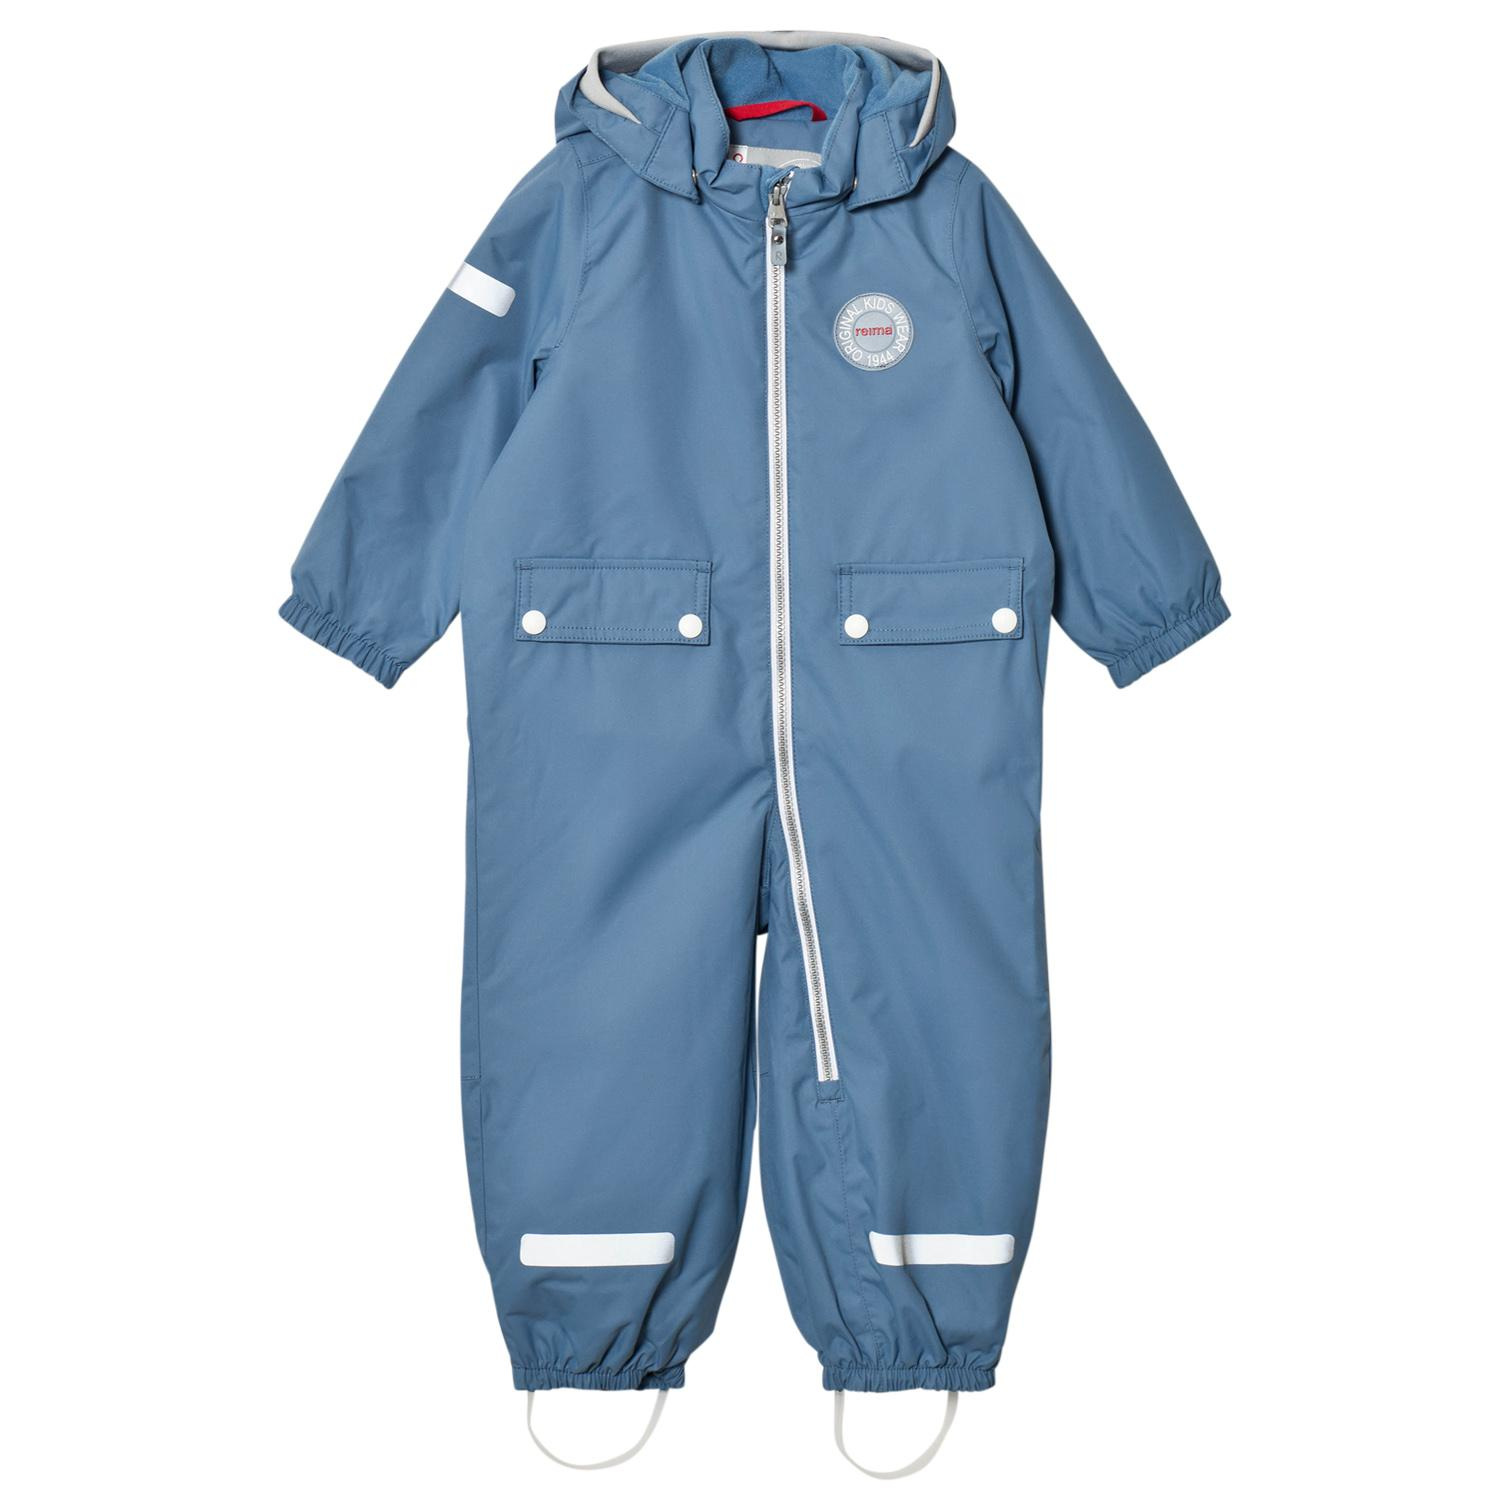 Toasty Toddlers - snow suit